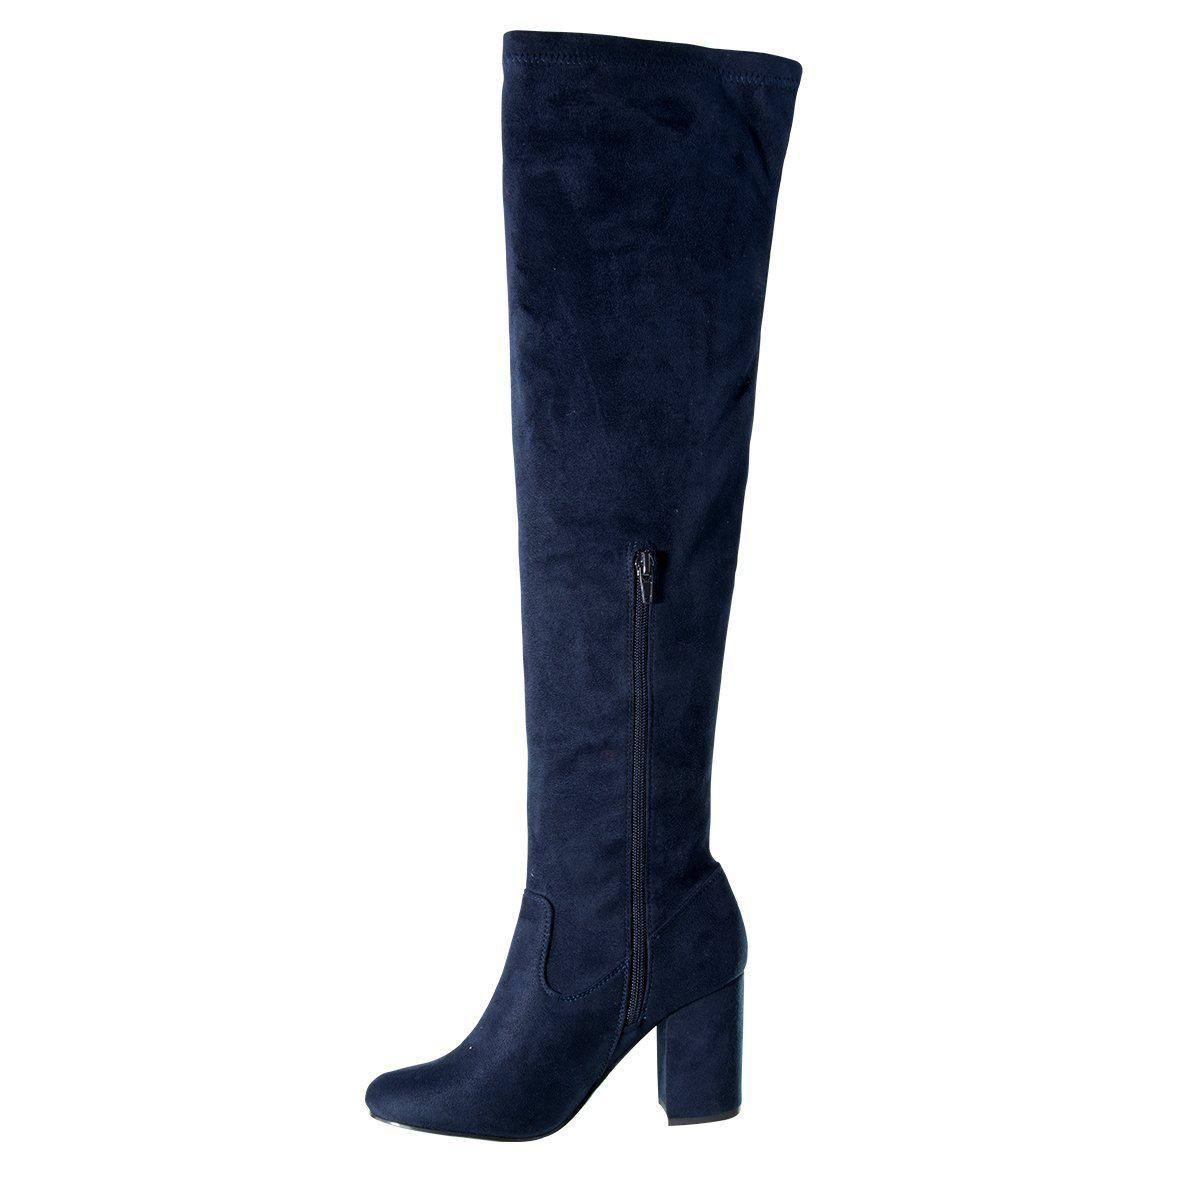 Stephanie Navy Long Boots-Madison Heart of New York-Buy shoes online